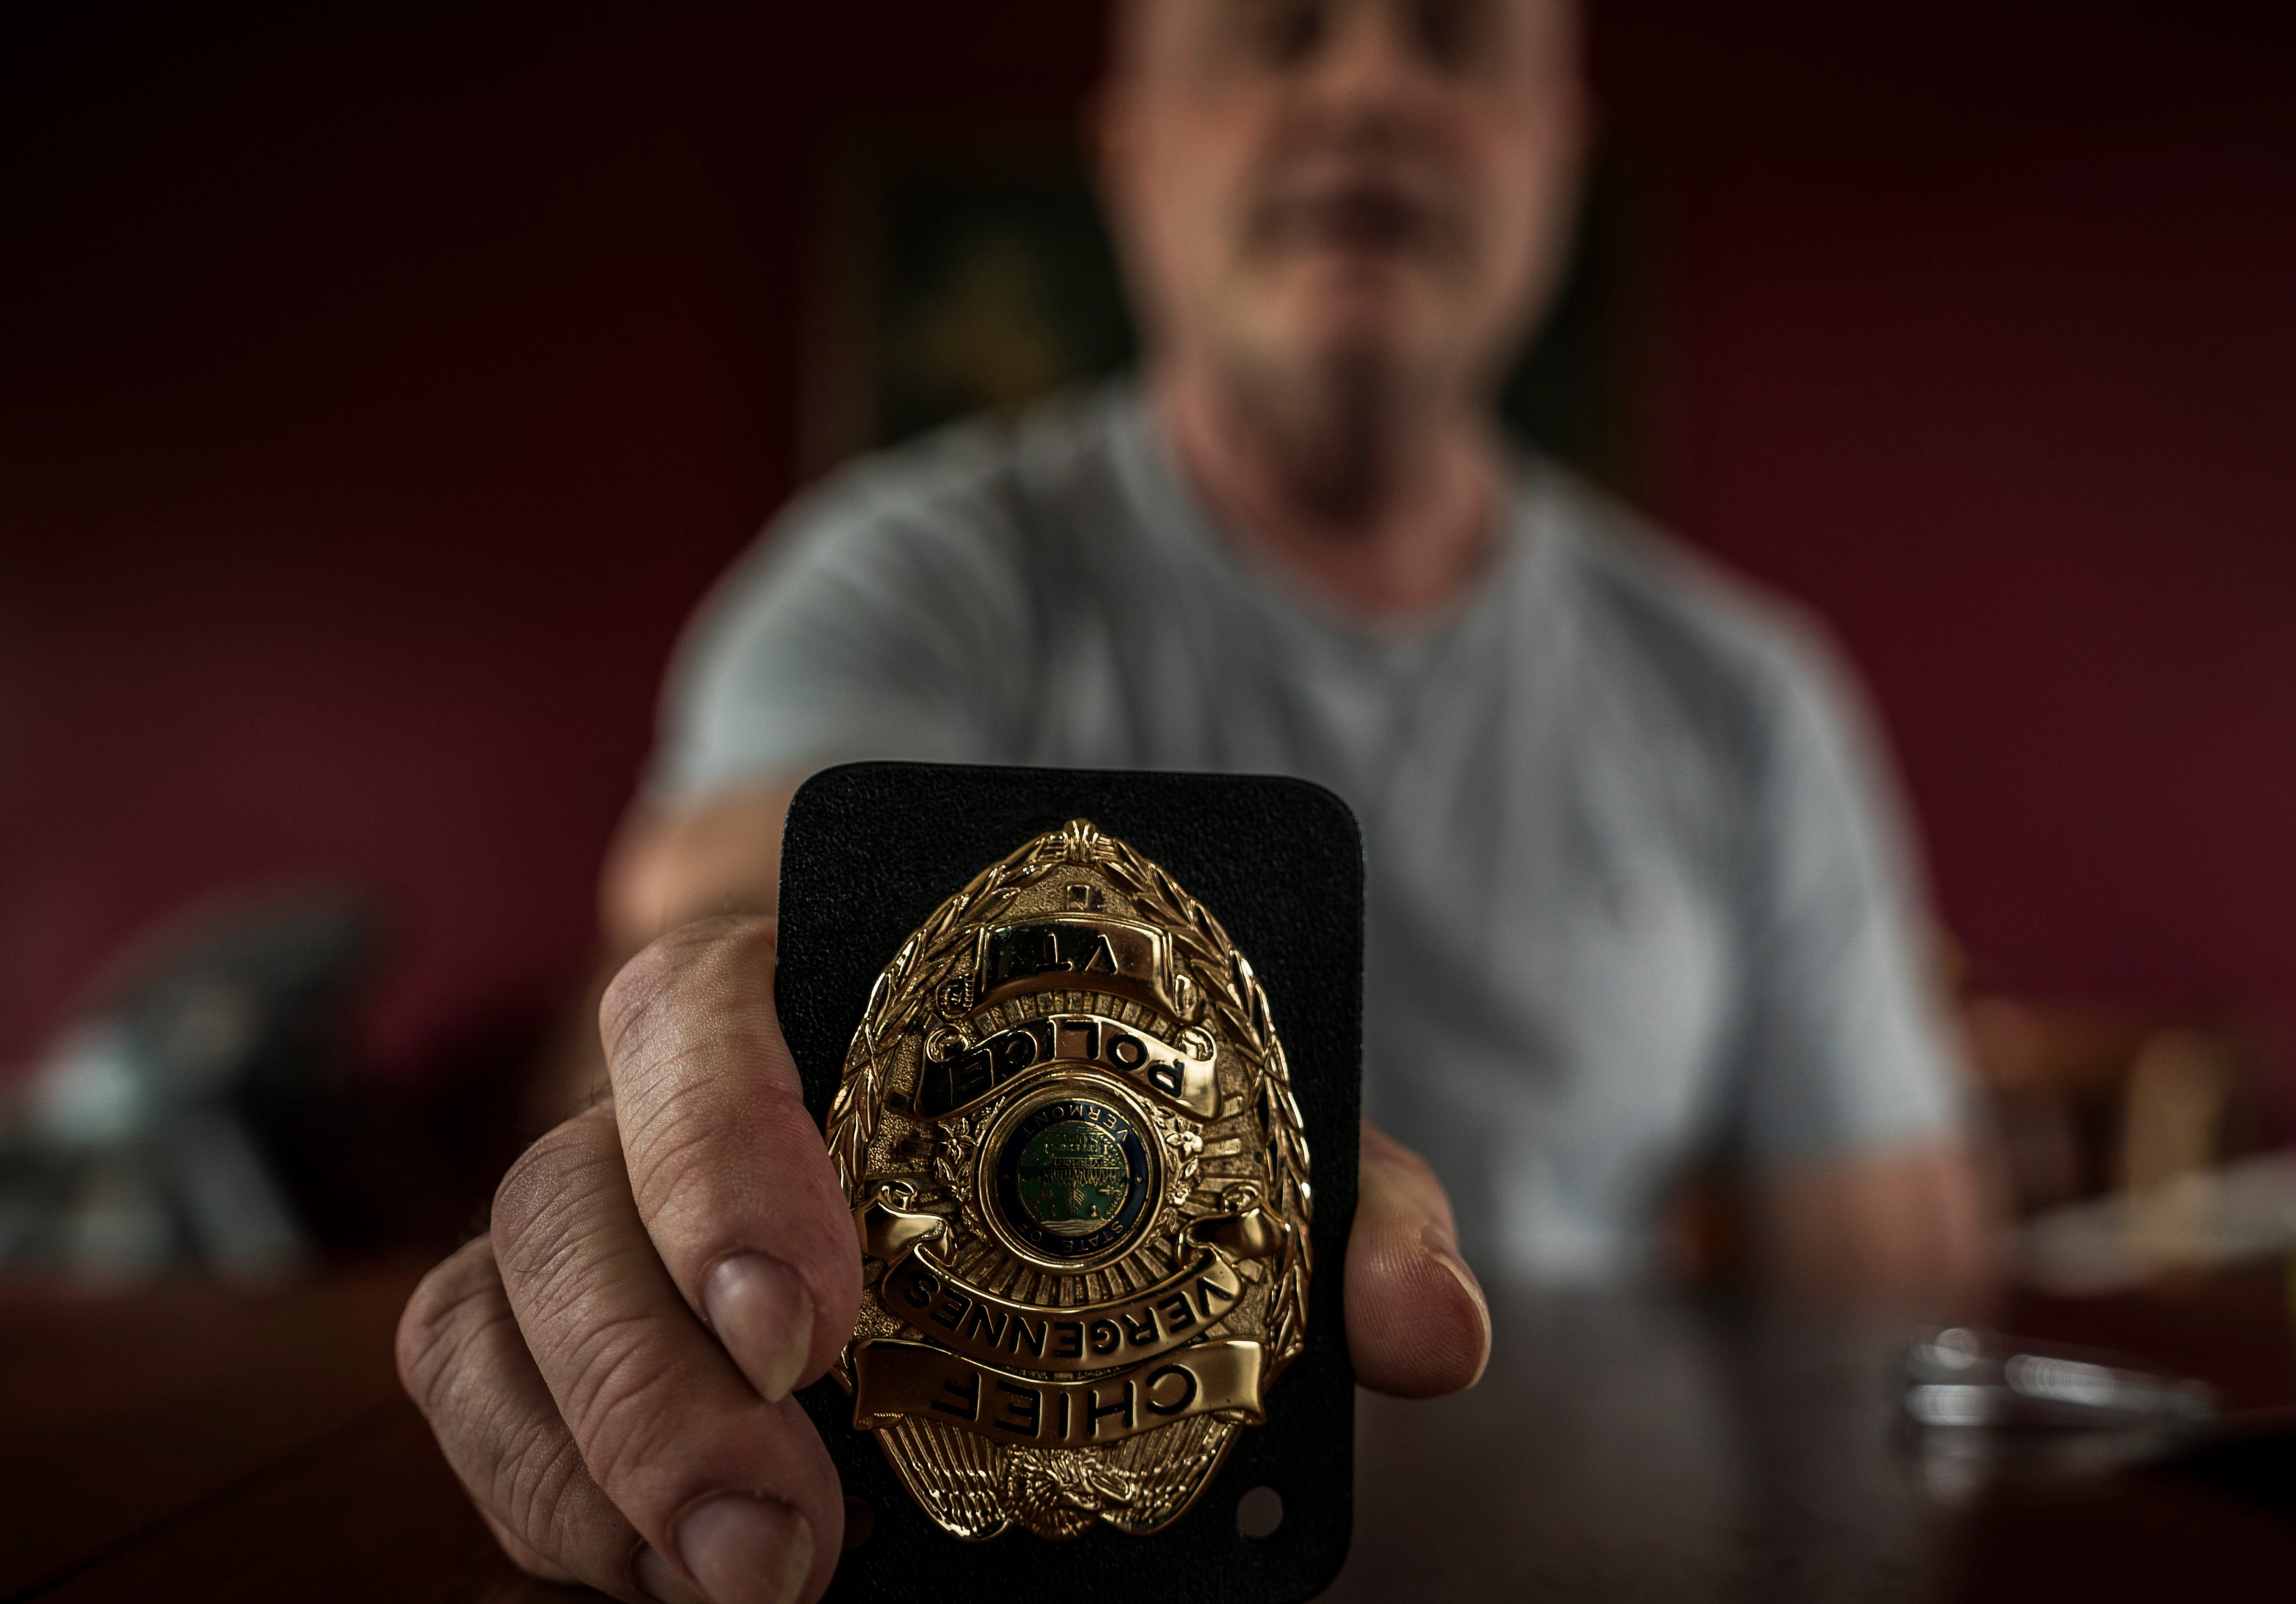 """""""I flipped everyone's world upside down,"""" Michael Lowe says, referring to his time as Vergennes Police Chief. After years of struggling with opioid addiction that spiraled into the abuse of other drugs, Lowe hit rock bottom and served prison time, destroying his career in law enforcement."""